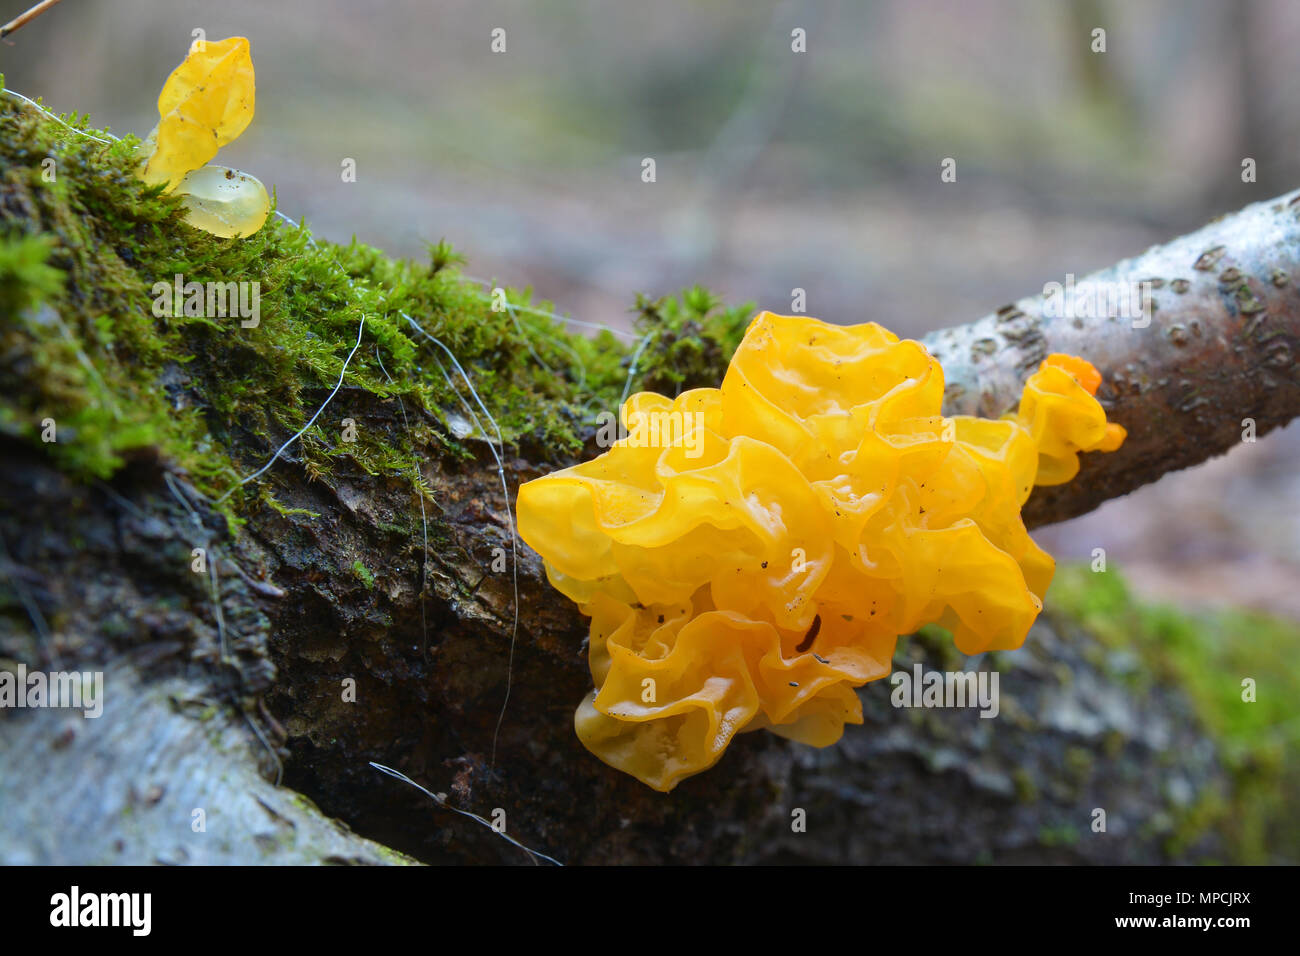 tremella mesenterica, also known as yellow brain, golden jelly fungus, and witches' butter - Stock Image